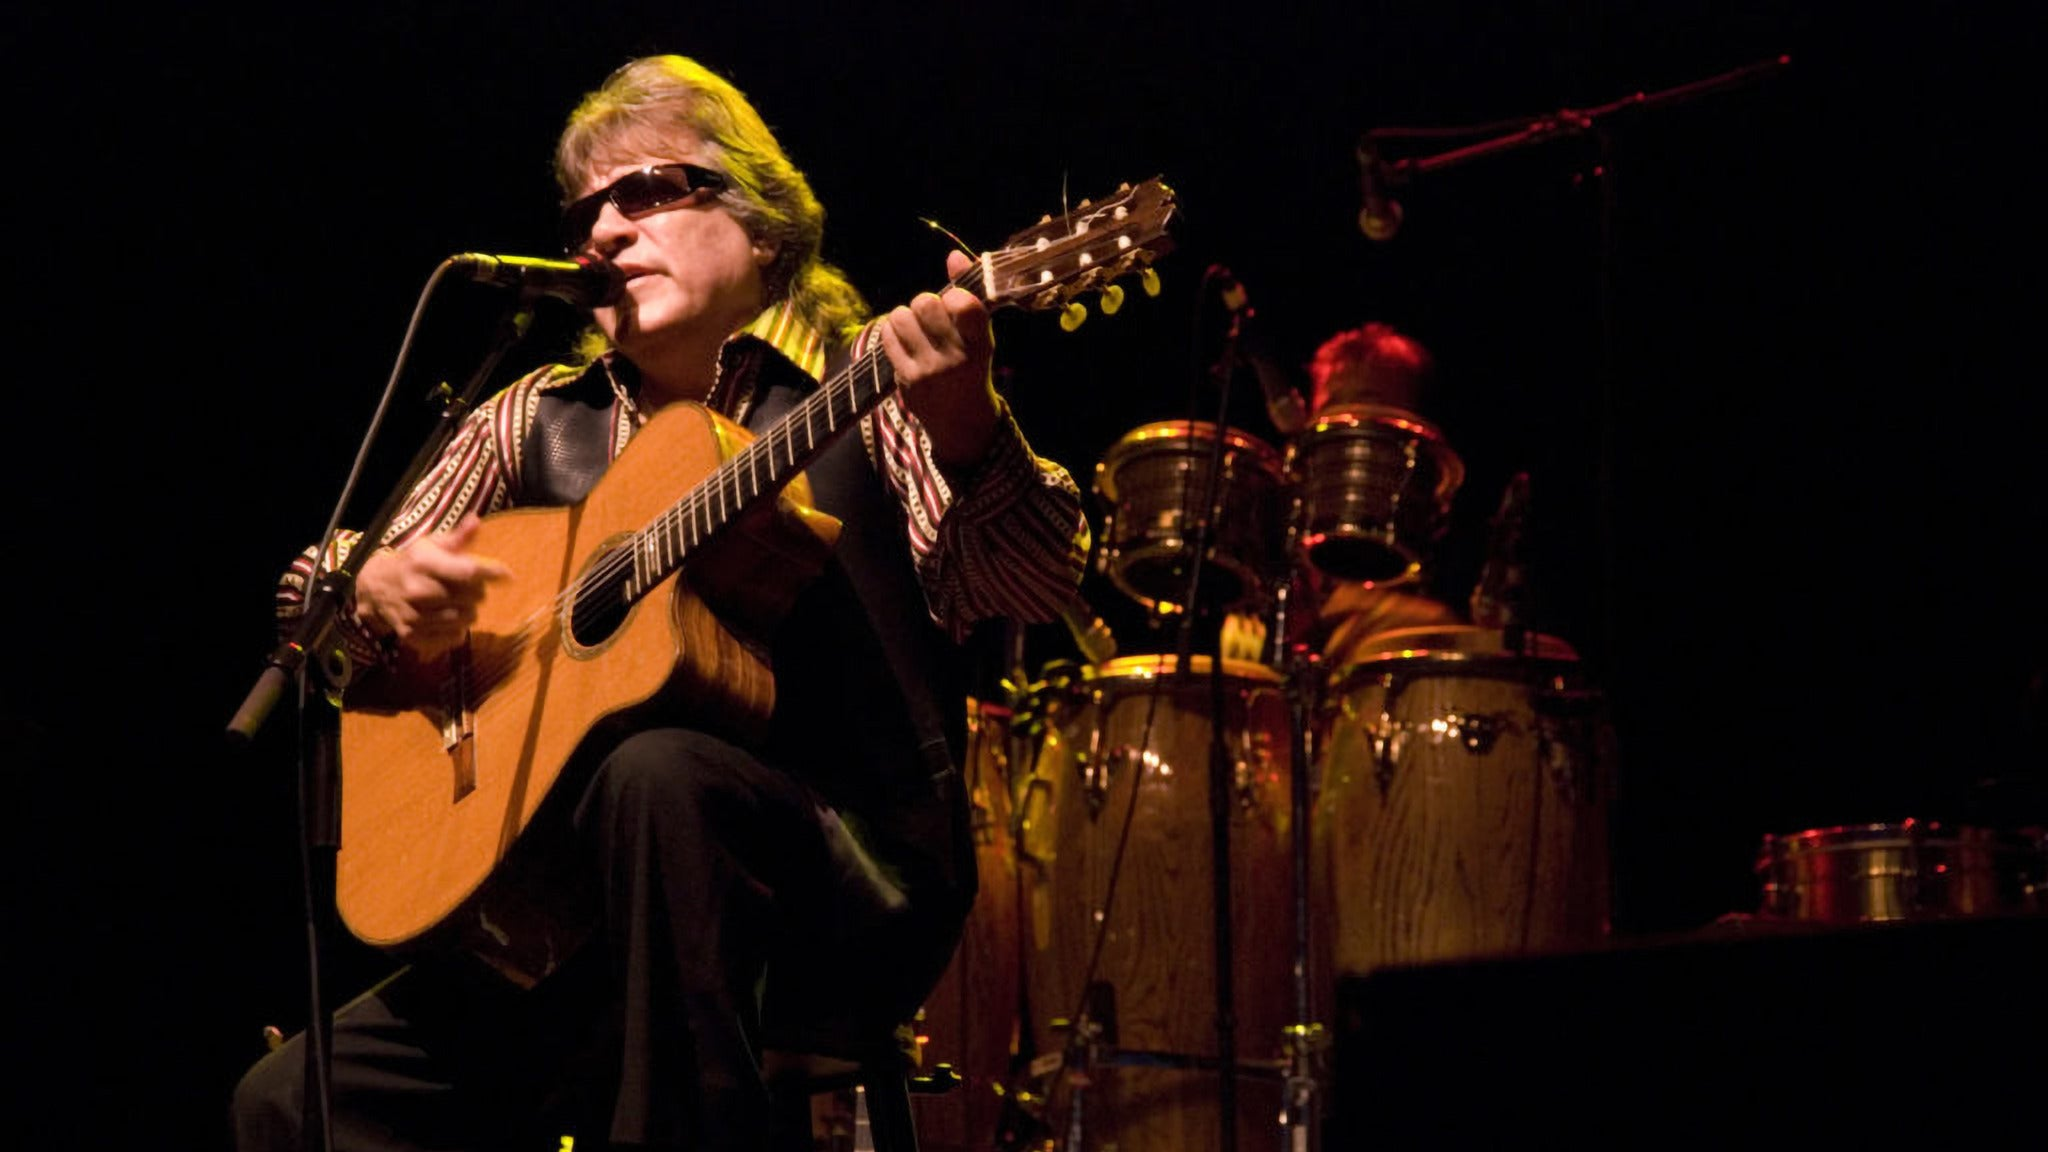 Jose Feliciano at The Coach House